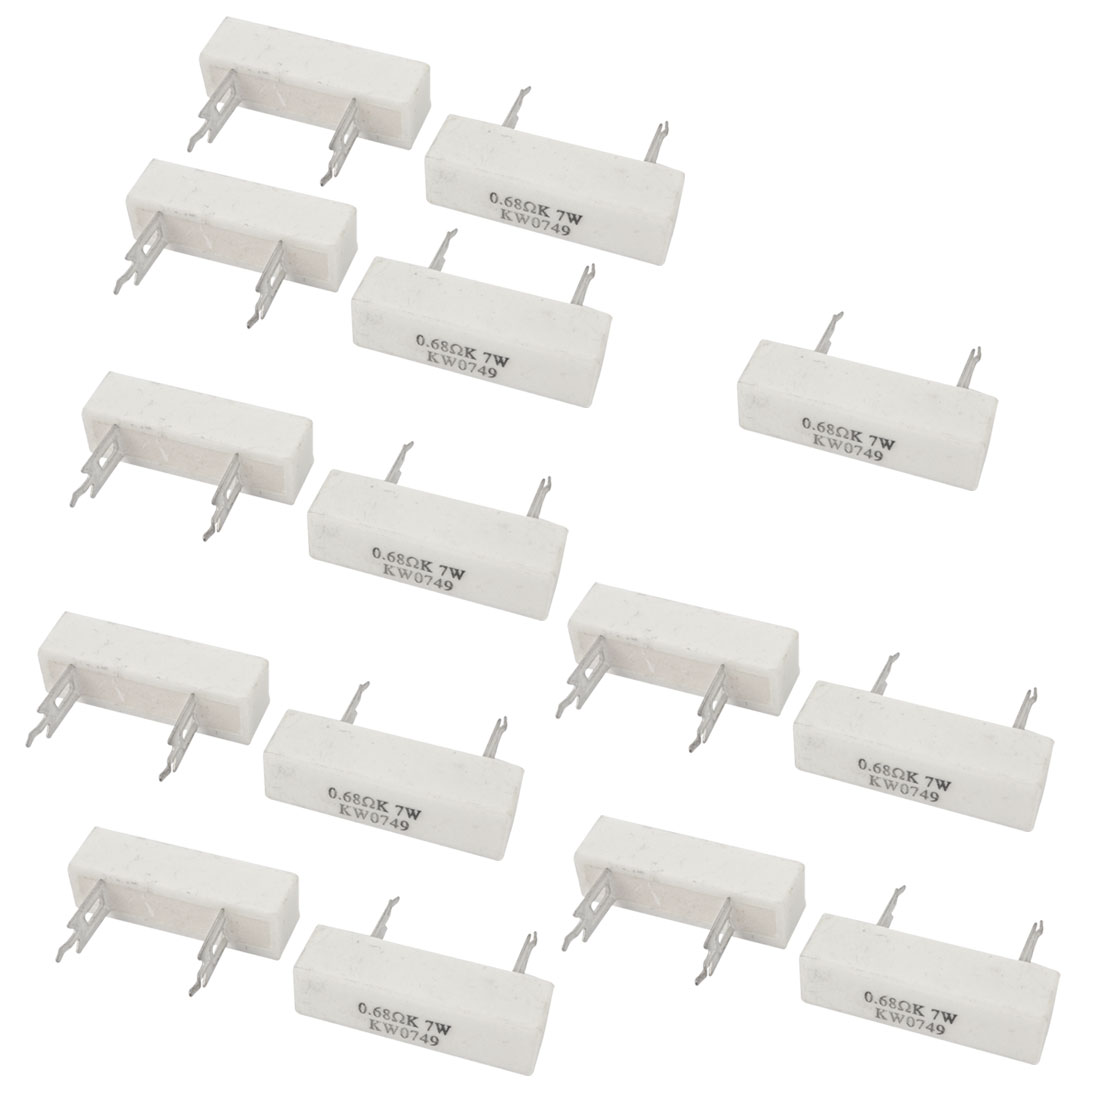 15 Pcs 7W 0.68 Ohm Radial Lead Ceramic Cement Power Resistor